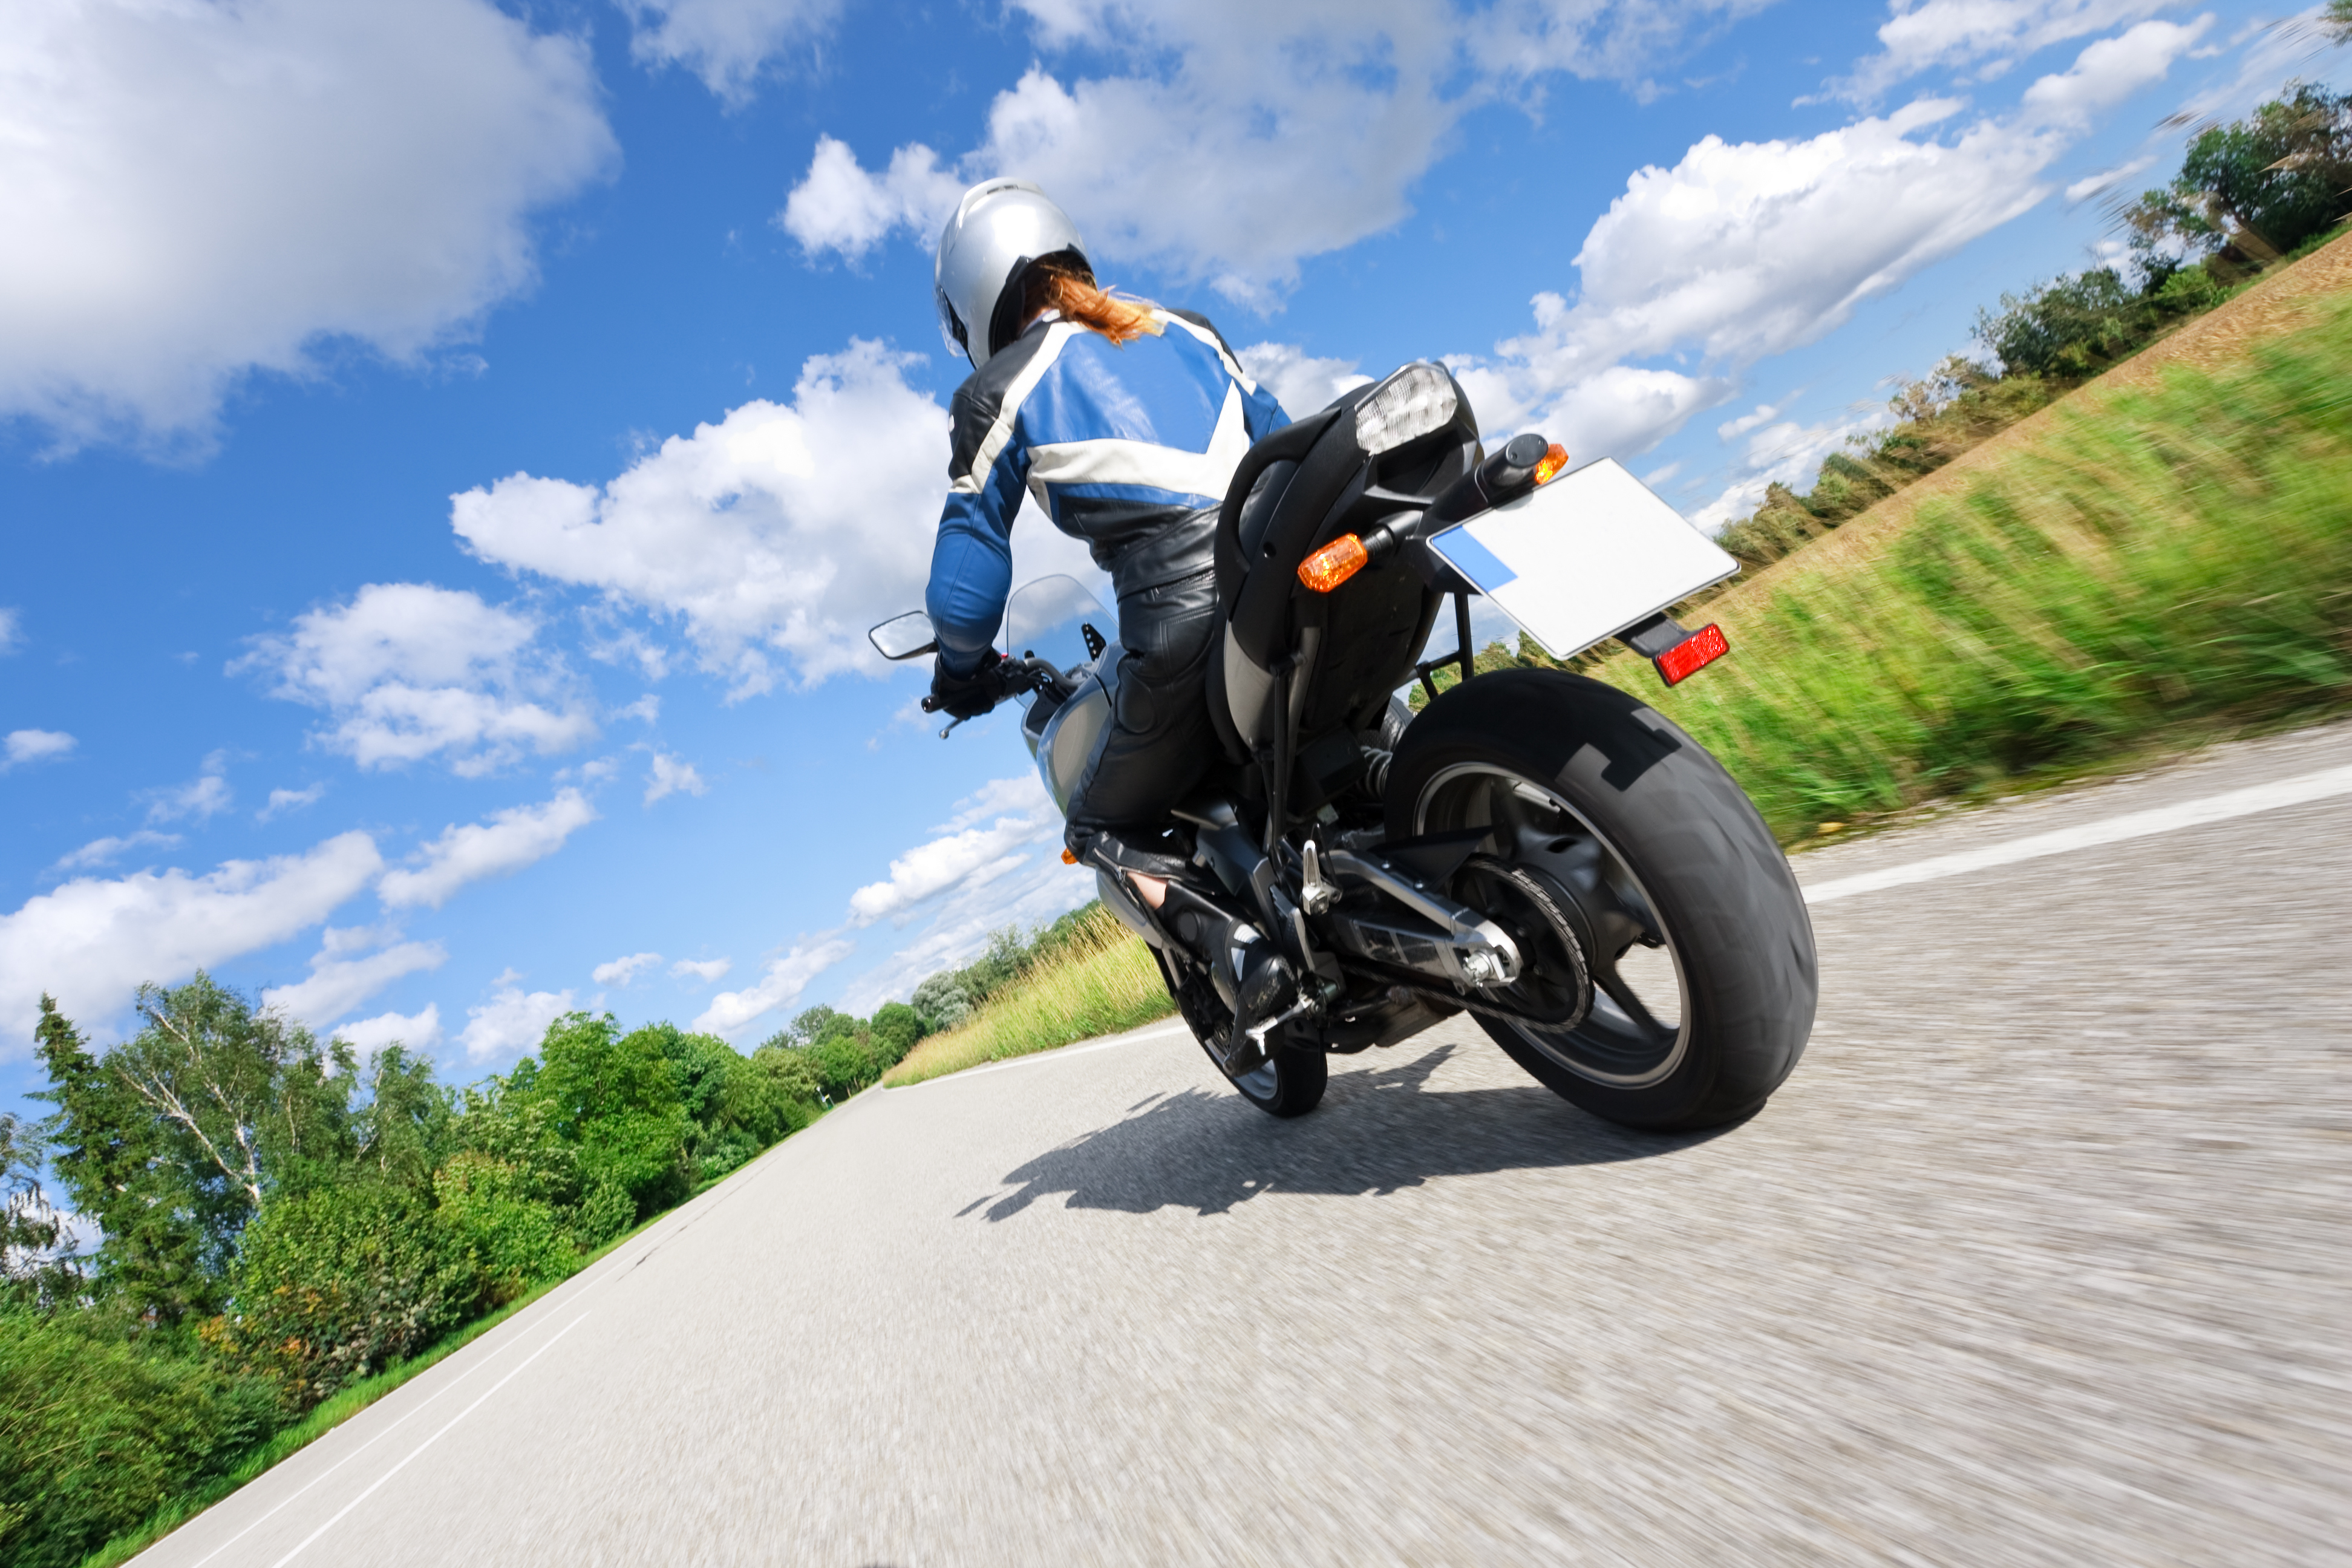 Discussion on this topic: How to Get a Motorcycle Loan, how-to-get-a-motorcycle-loan/